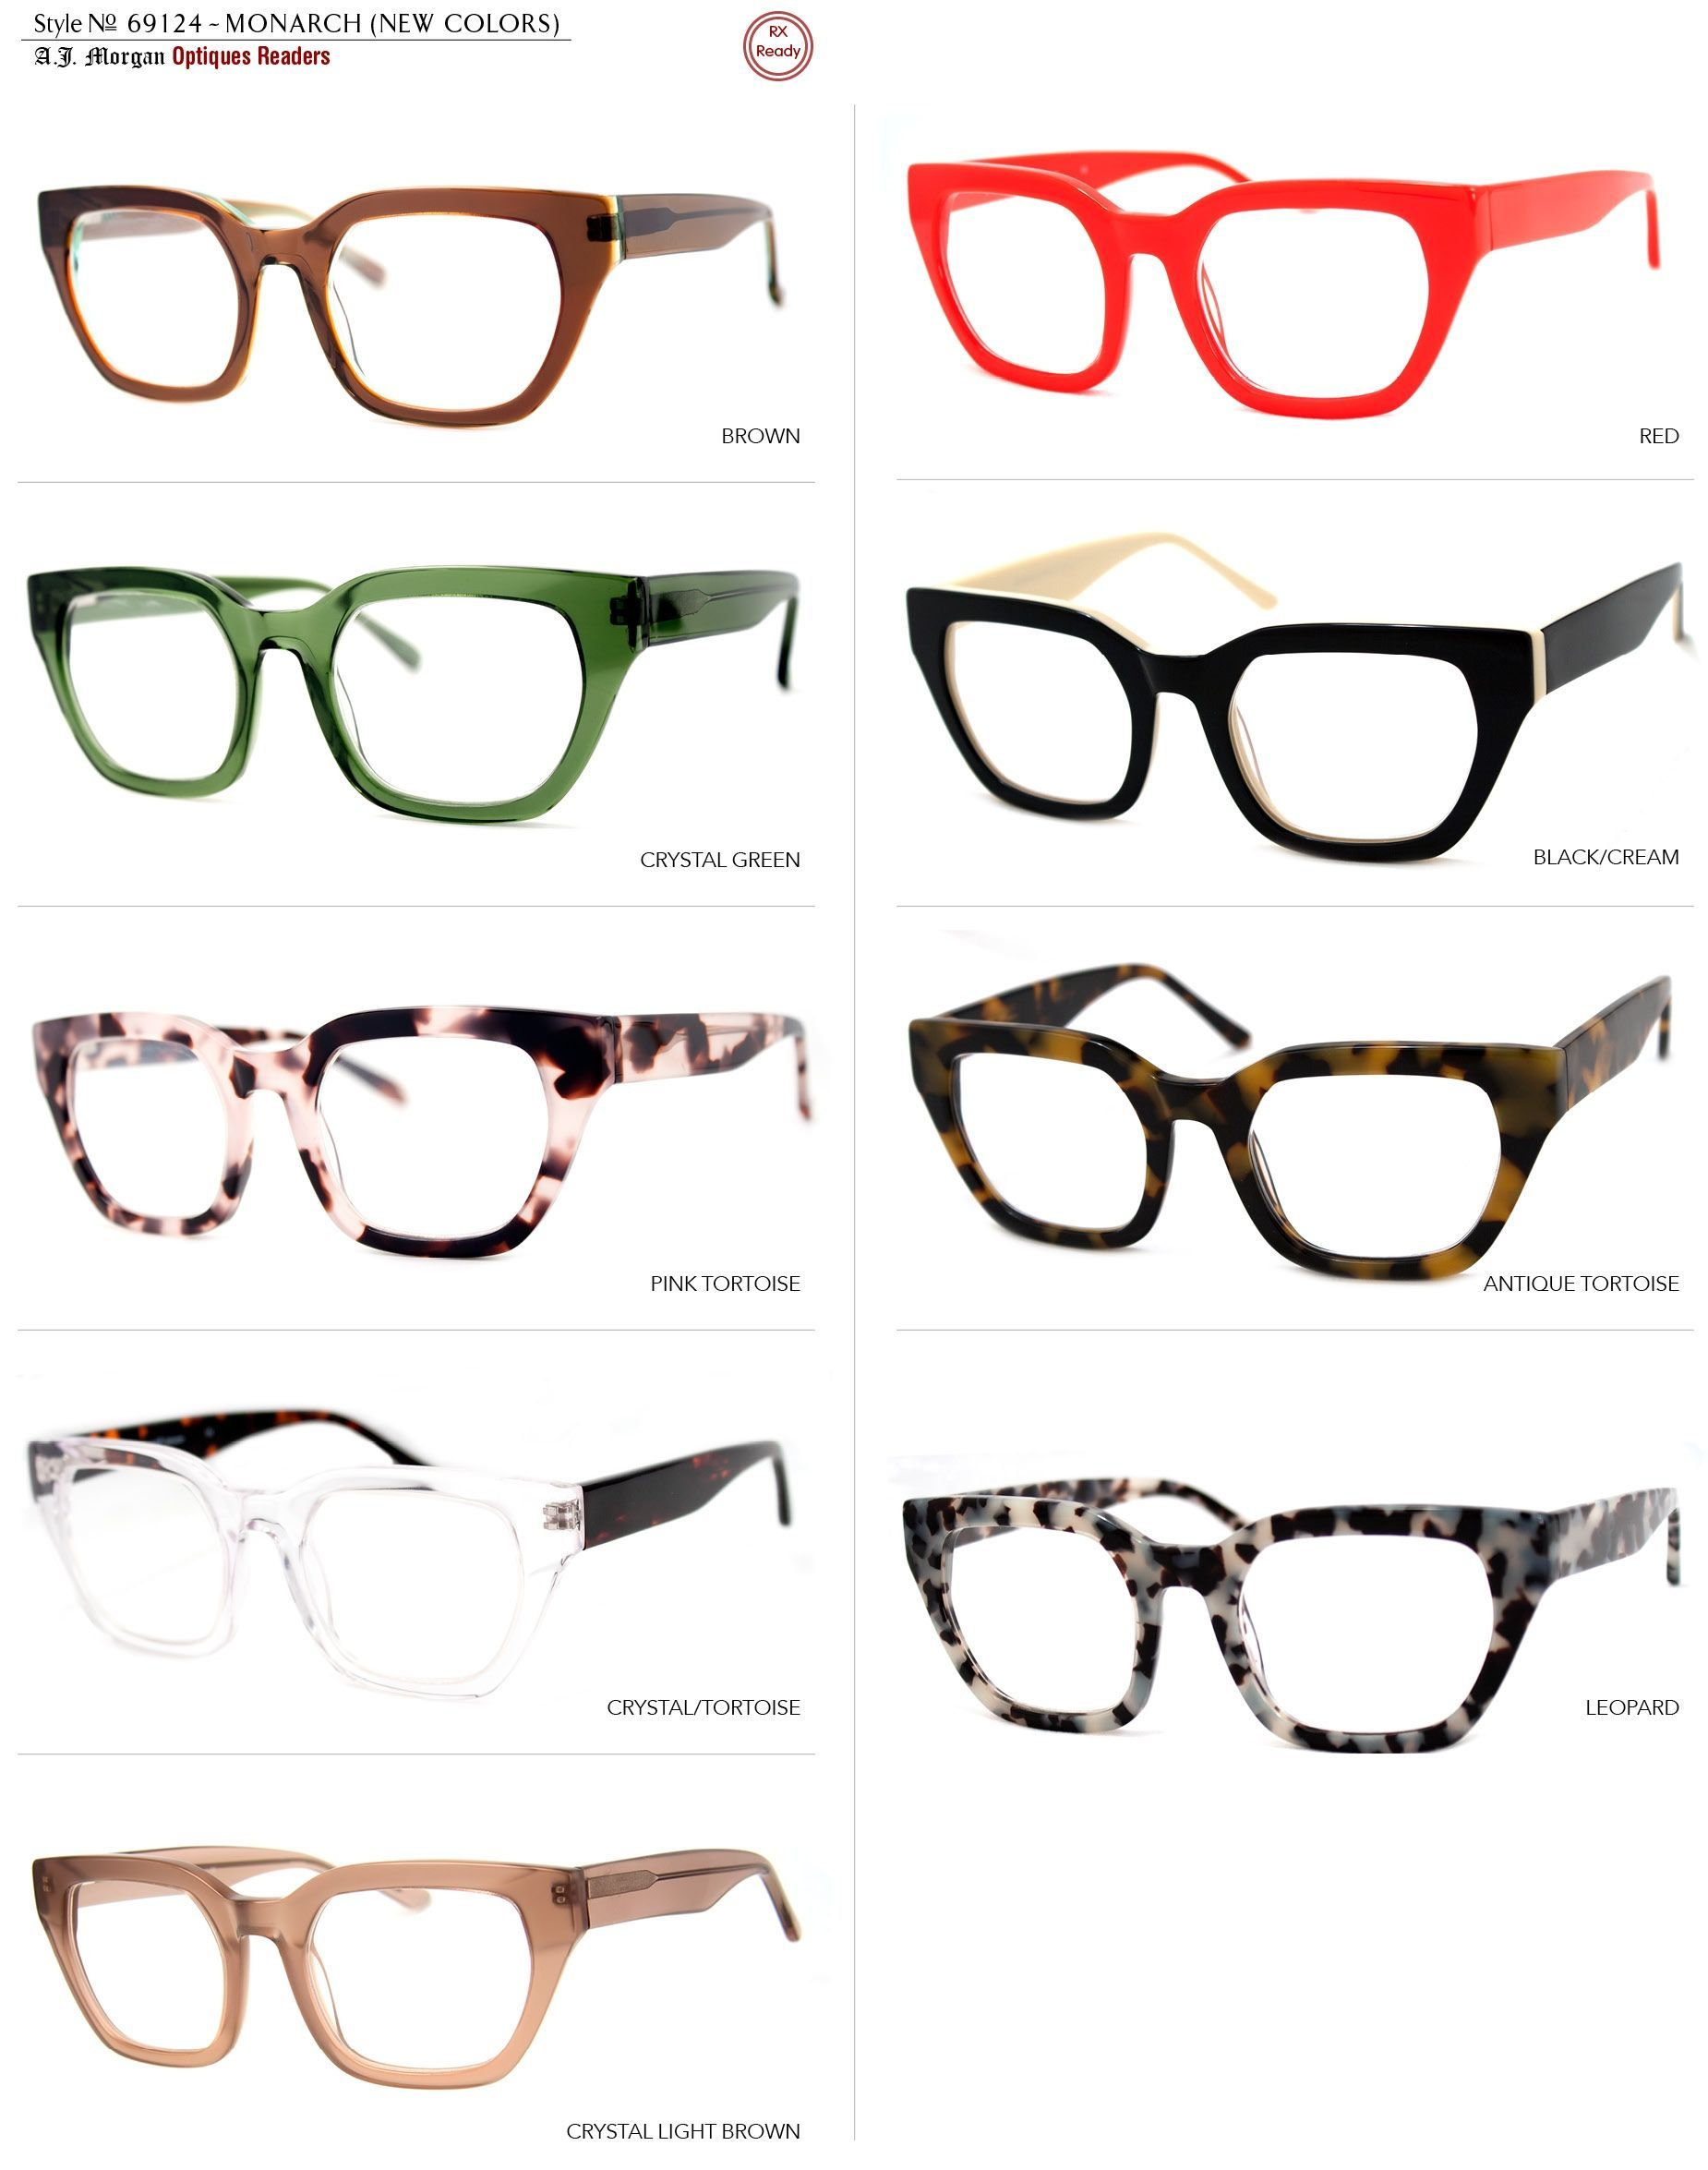 6abf1c7a2603 Thick Hip Trendy Reading Glasses by AJ Morgan | Products I Love ...